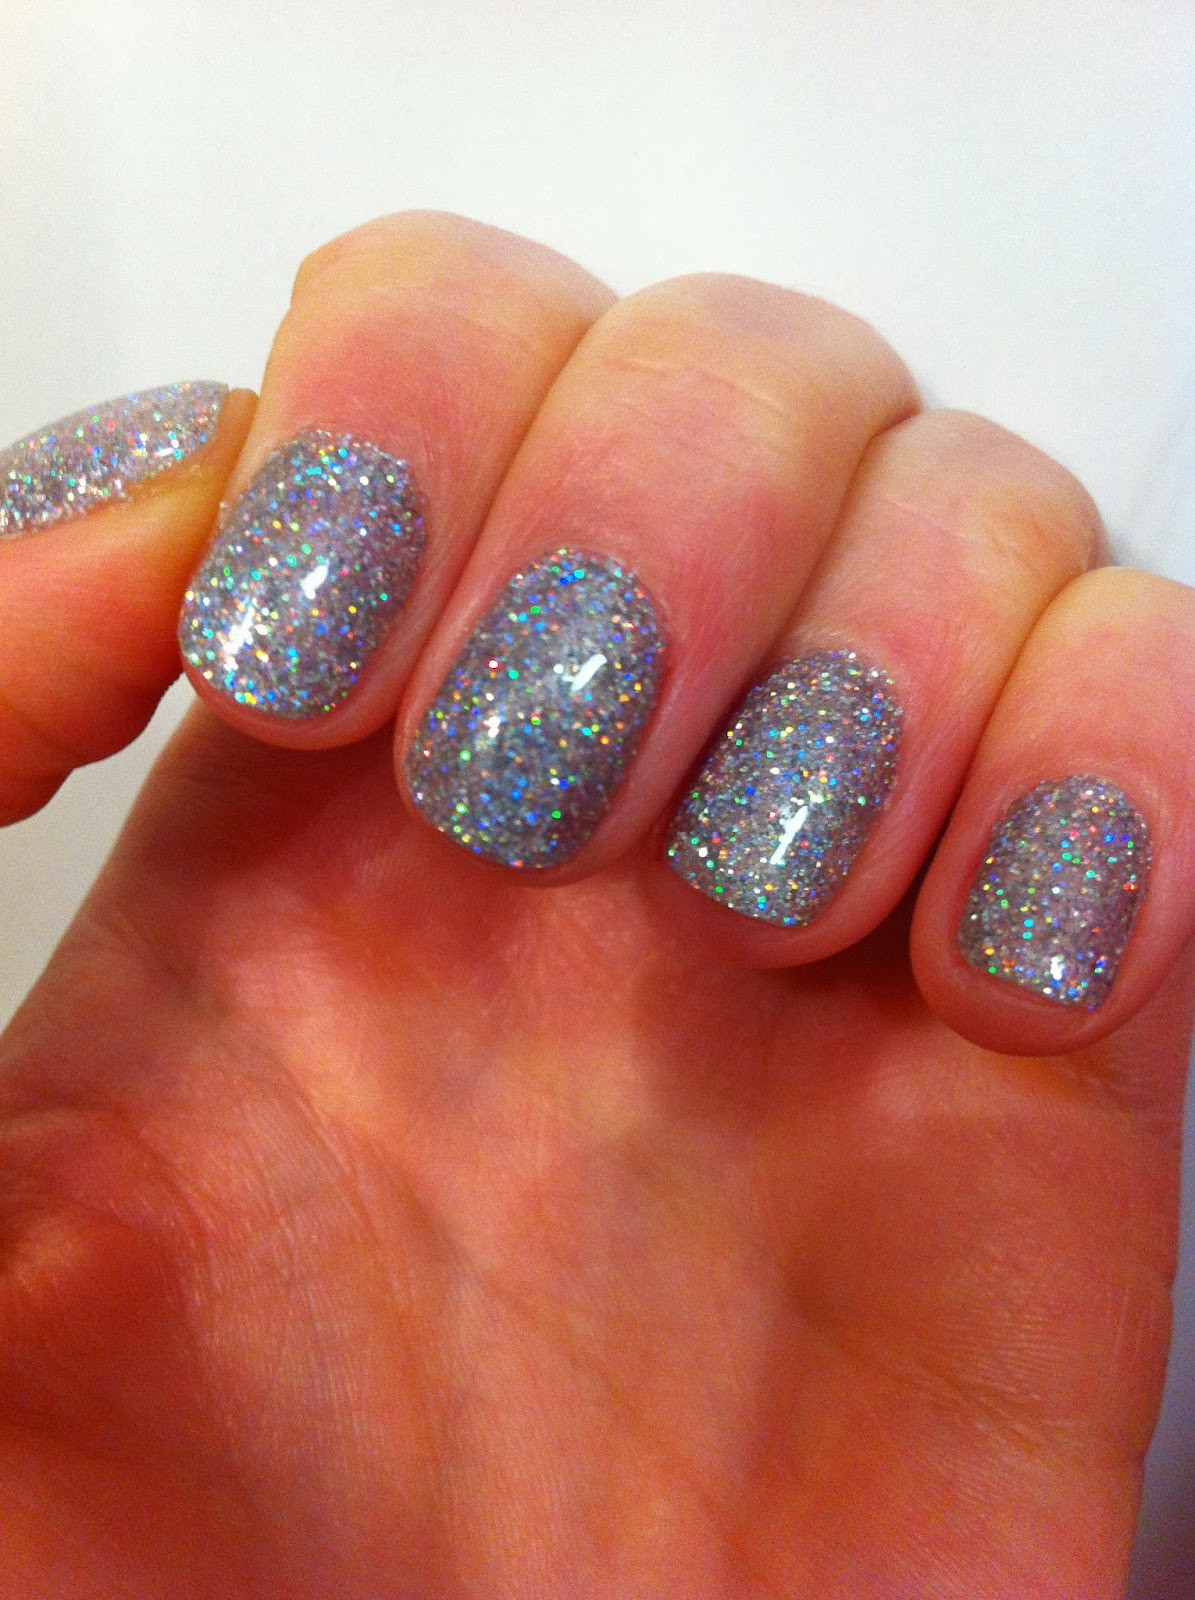 Glitter Dip Nails  Gel Nails Dipped In Glitter Nail Ftempo